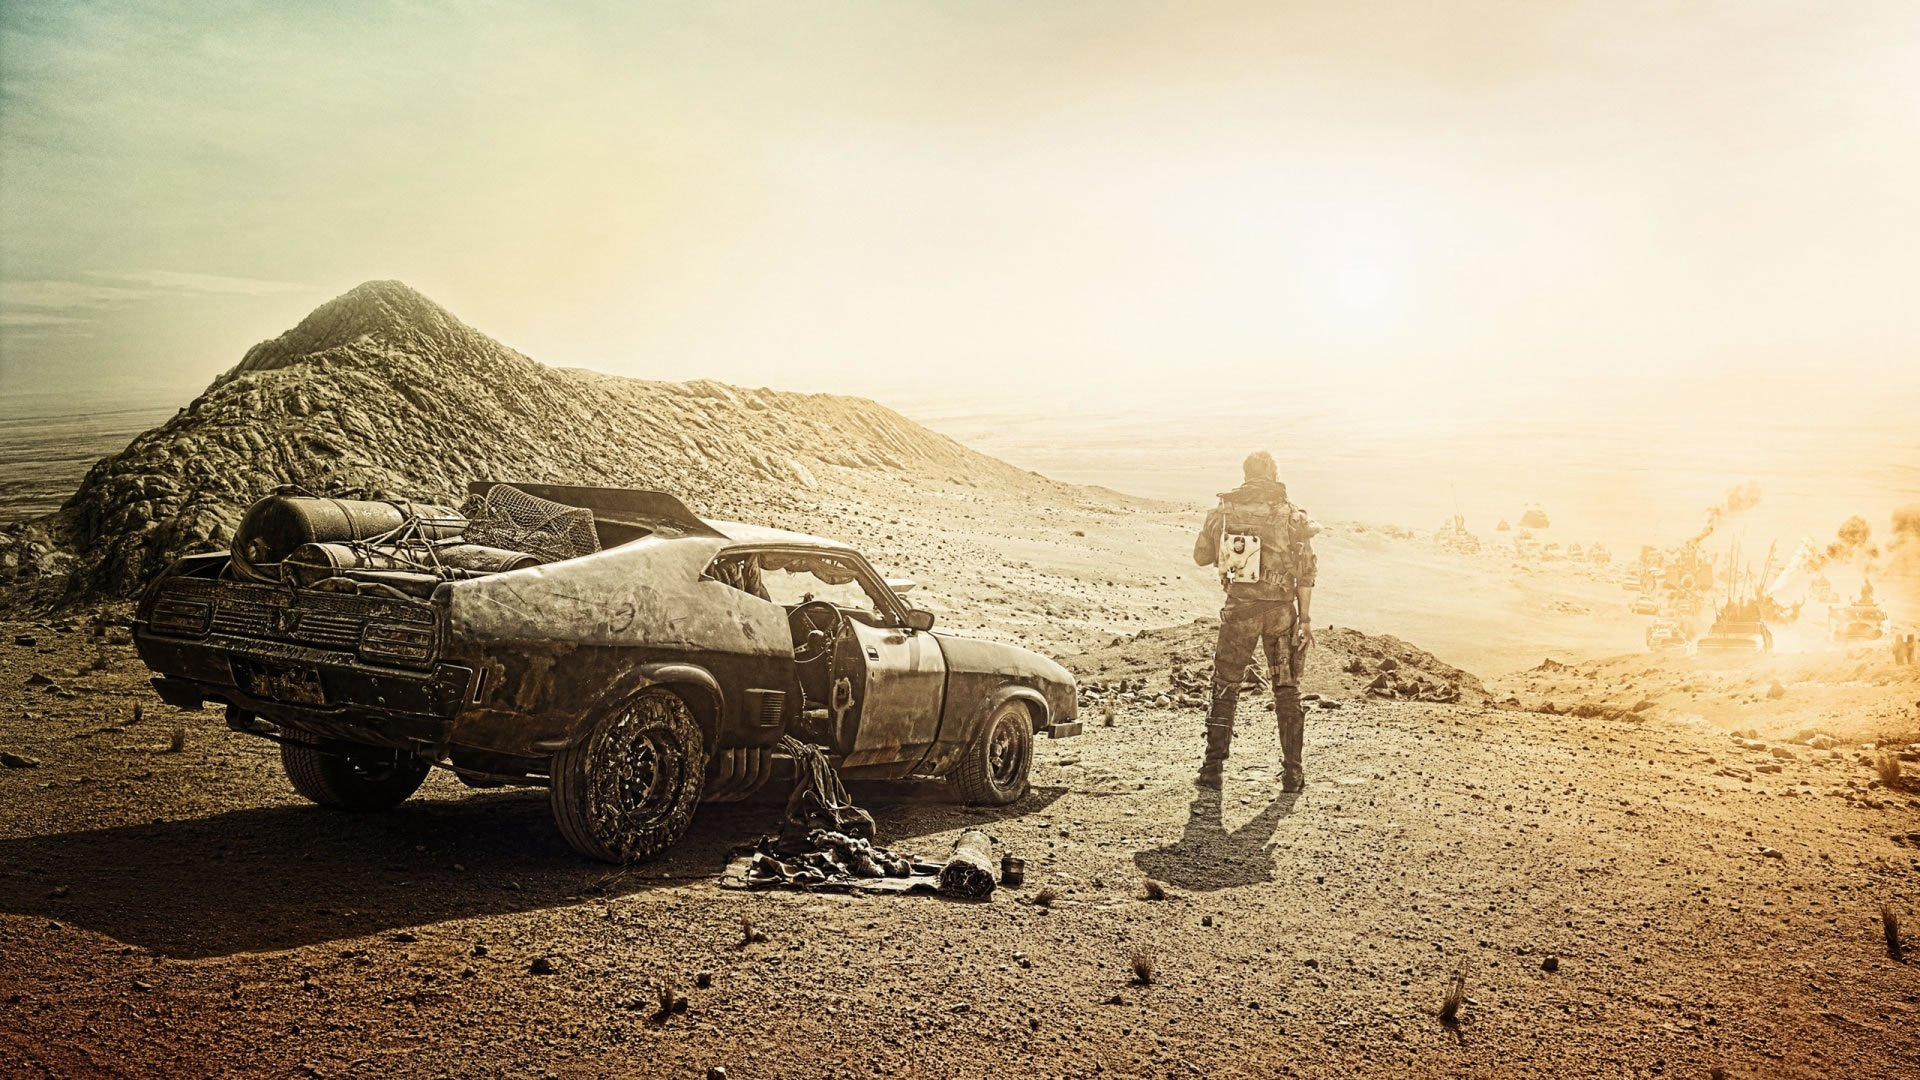 Mad Max Fury Road Wallpaper | Wallpaper HD 1080p | Pinterest | Mad